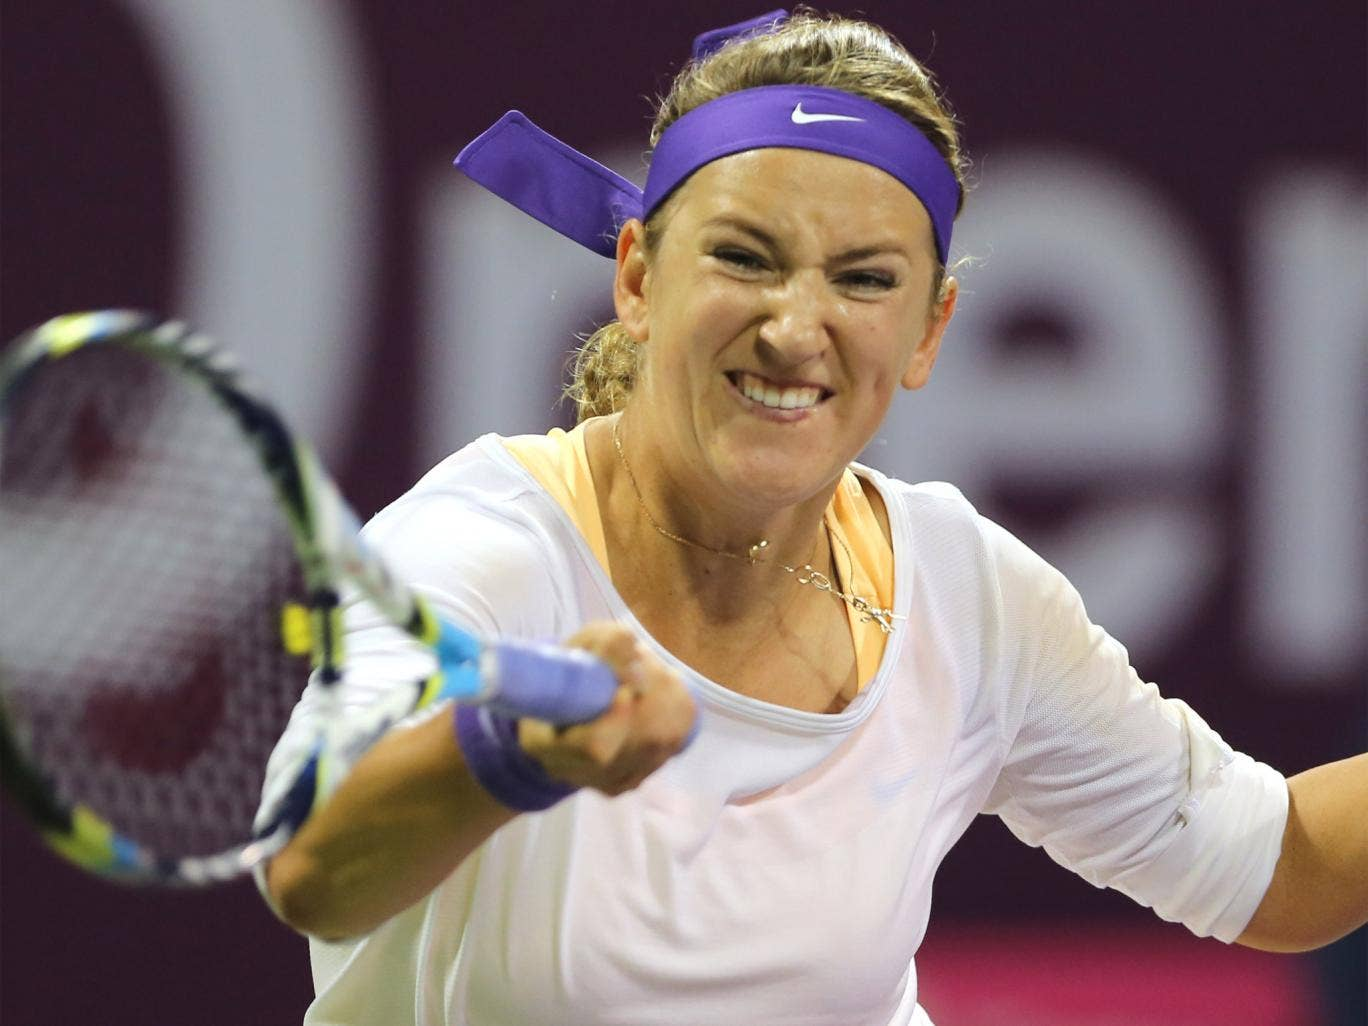 Azarenka: 'The game has become so physical and it takes so much out of you that sometimes you just need a break'